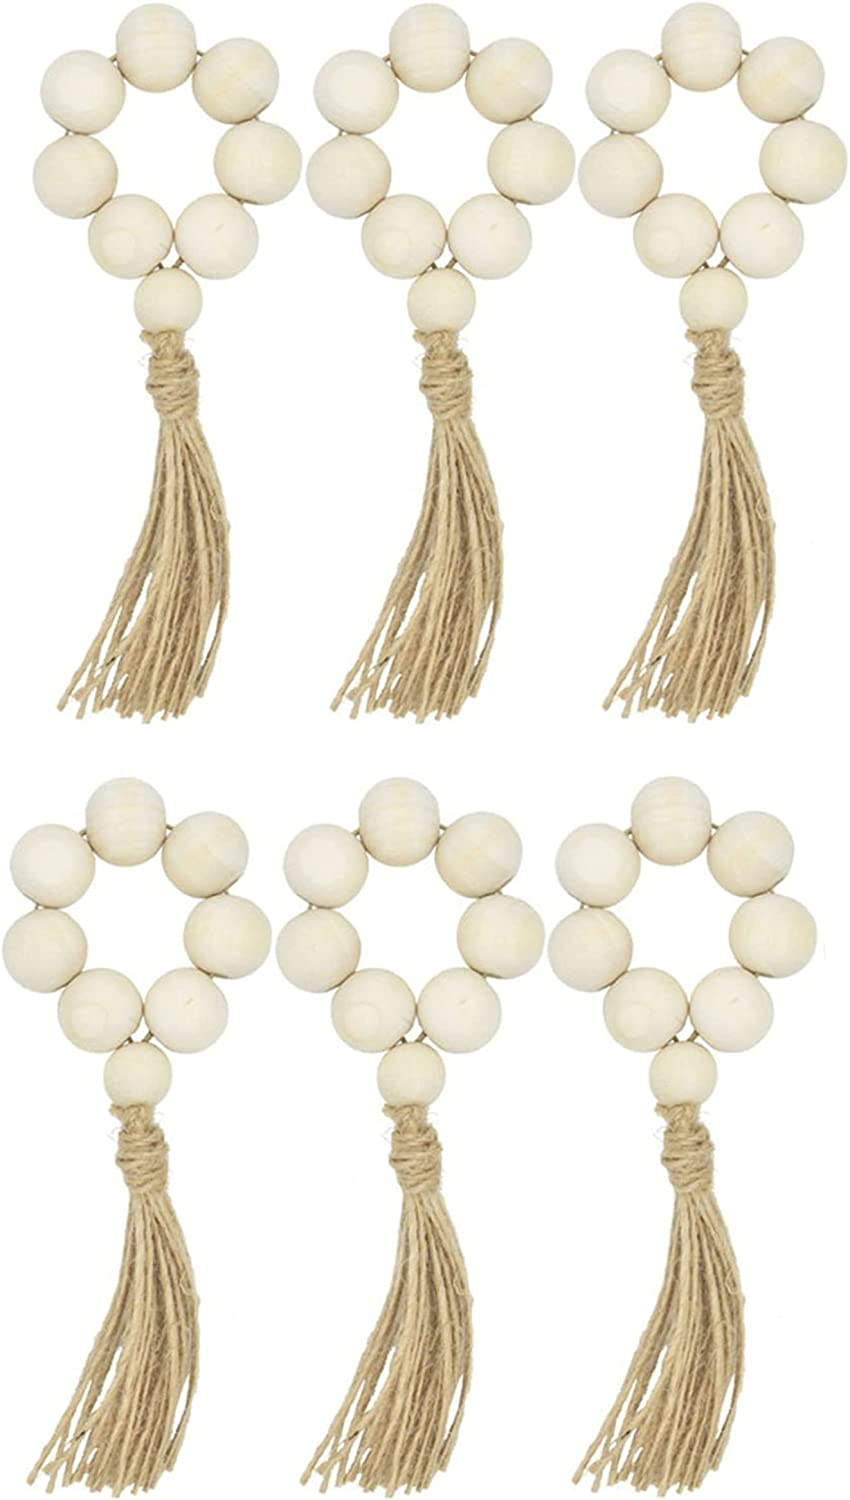 AceAcr Wood Translated Bead Garland Napkin Dec Rustic Beads Rings Ranking TOP3 Farmhouse